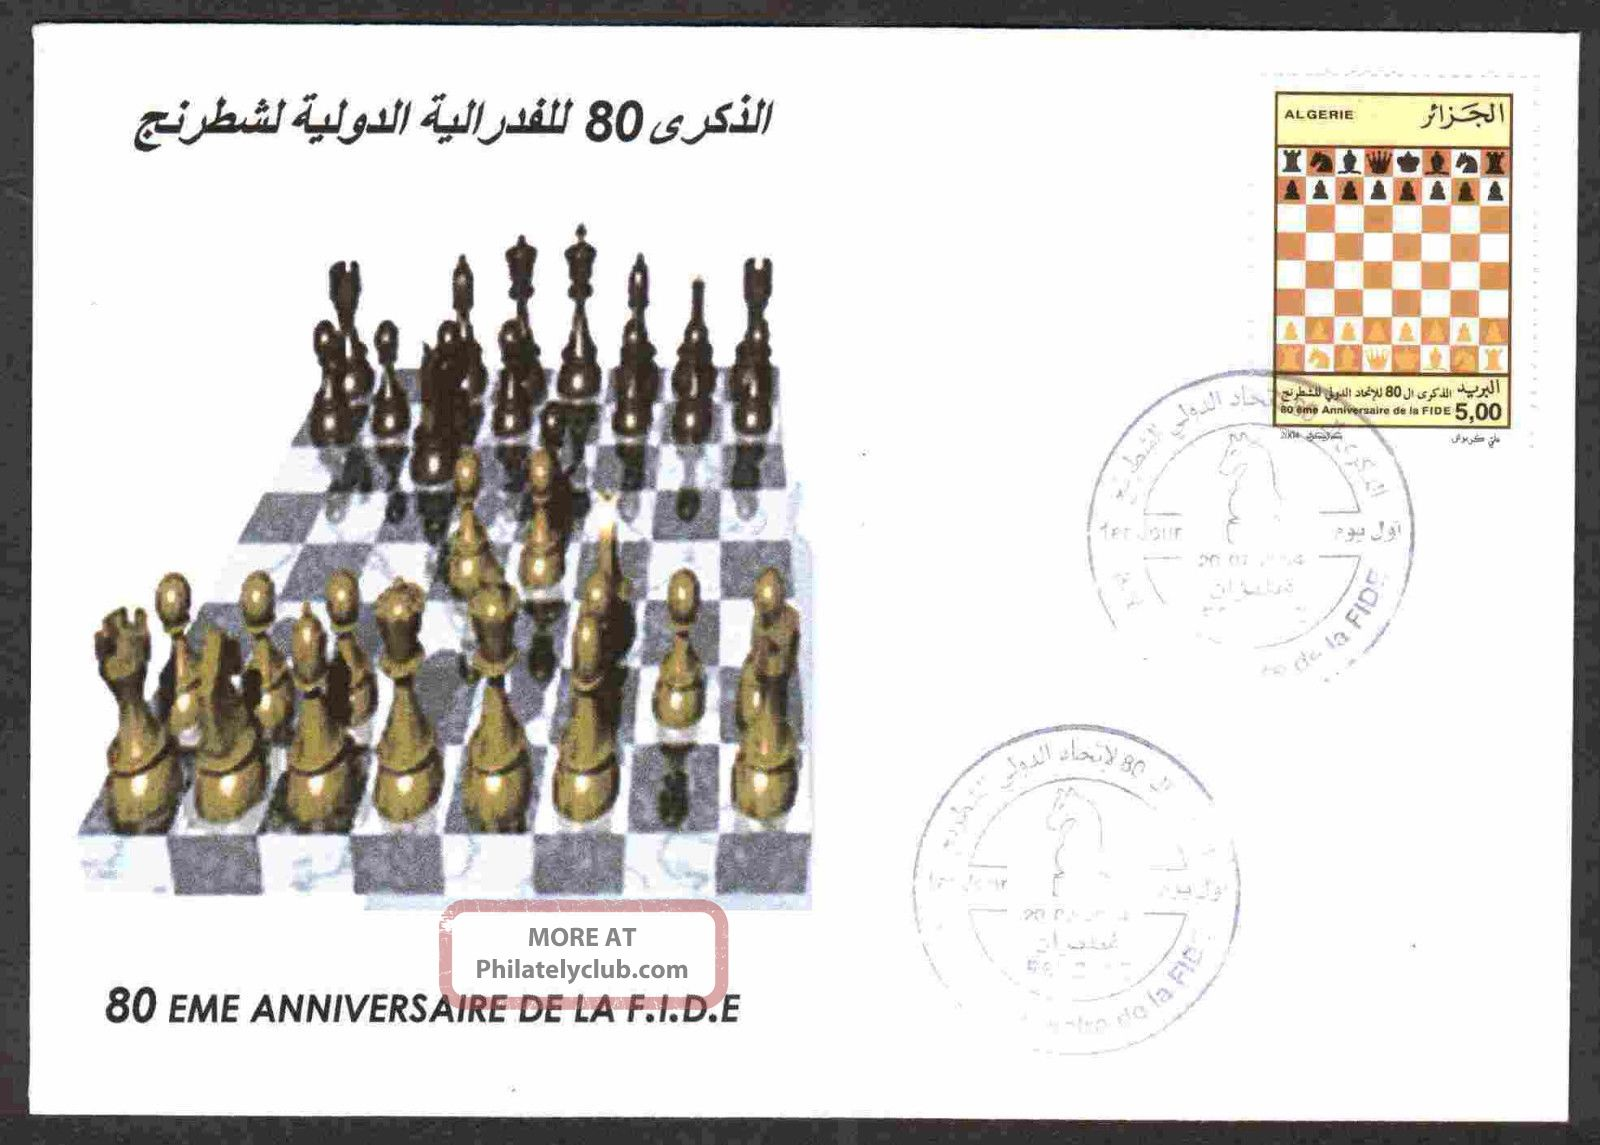 Algeria 2004 - Chess,  Scott 1310 - Fdc With Topical Cancel (relizene) Sports photo